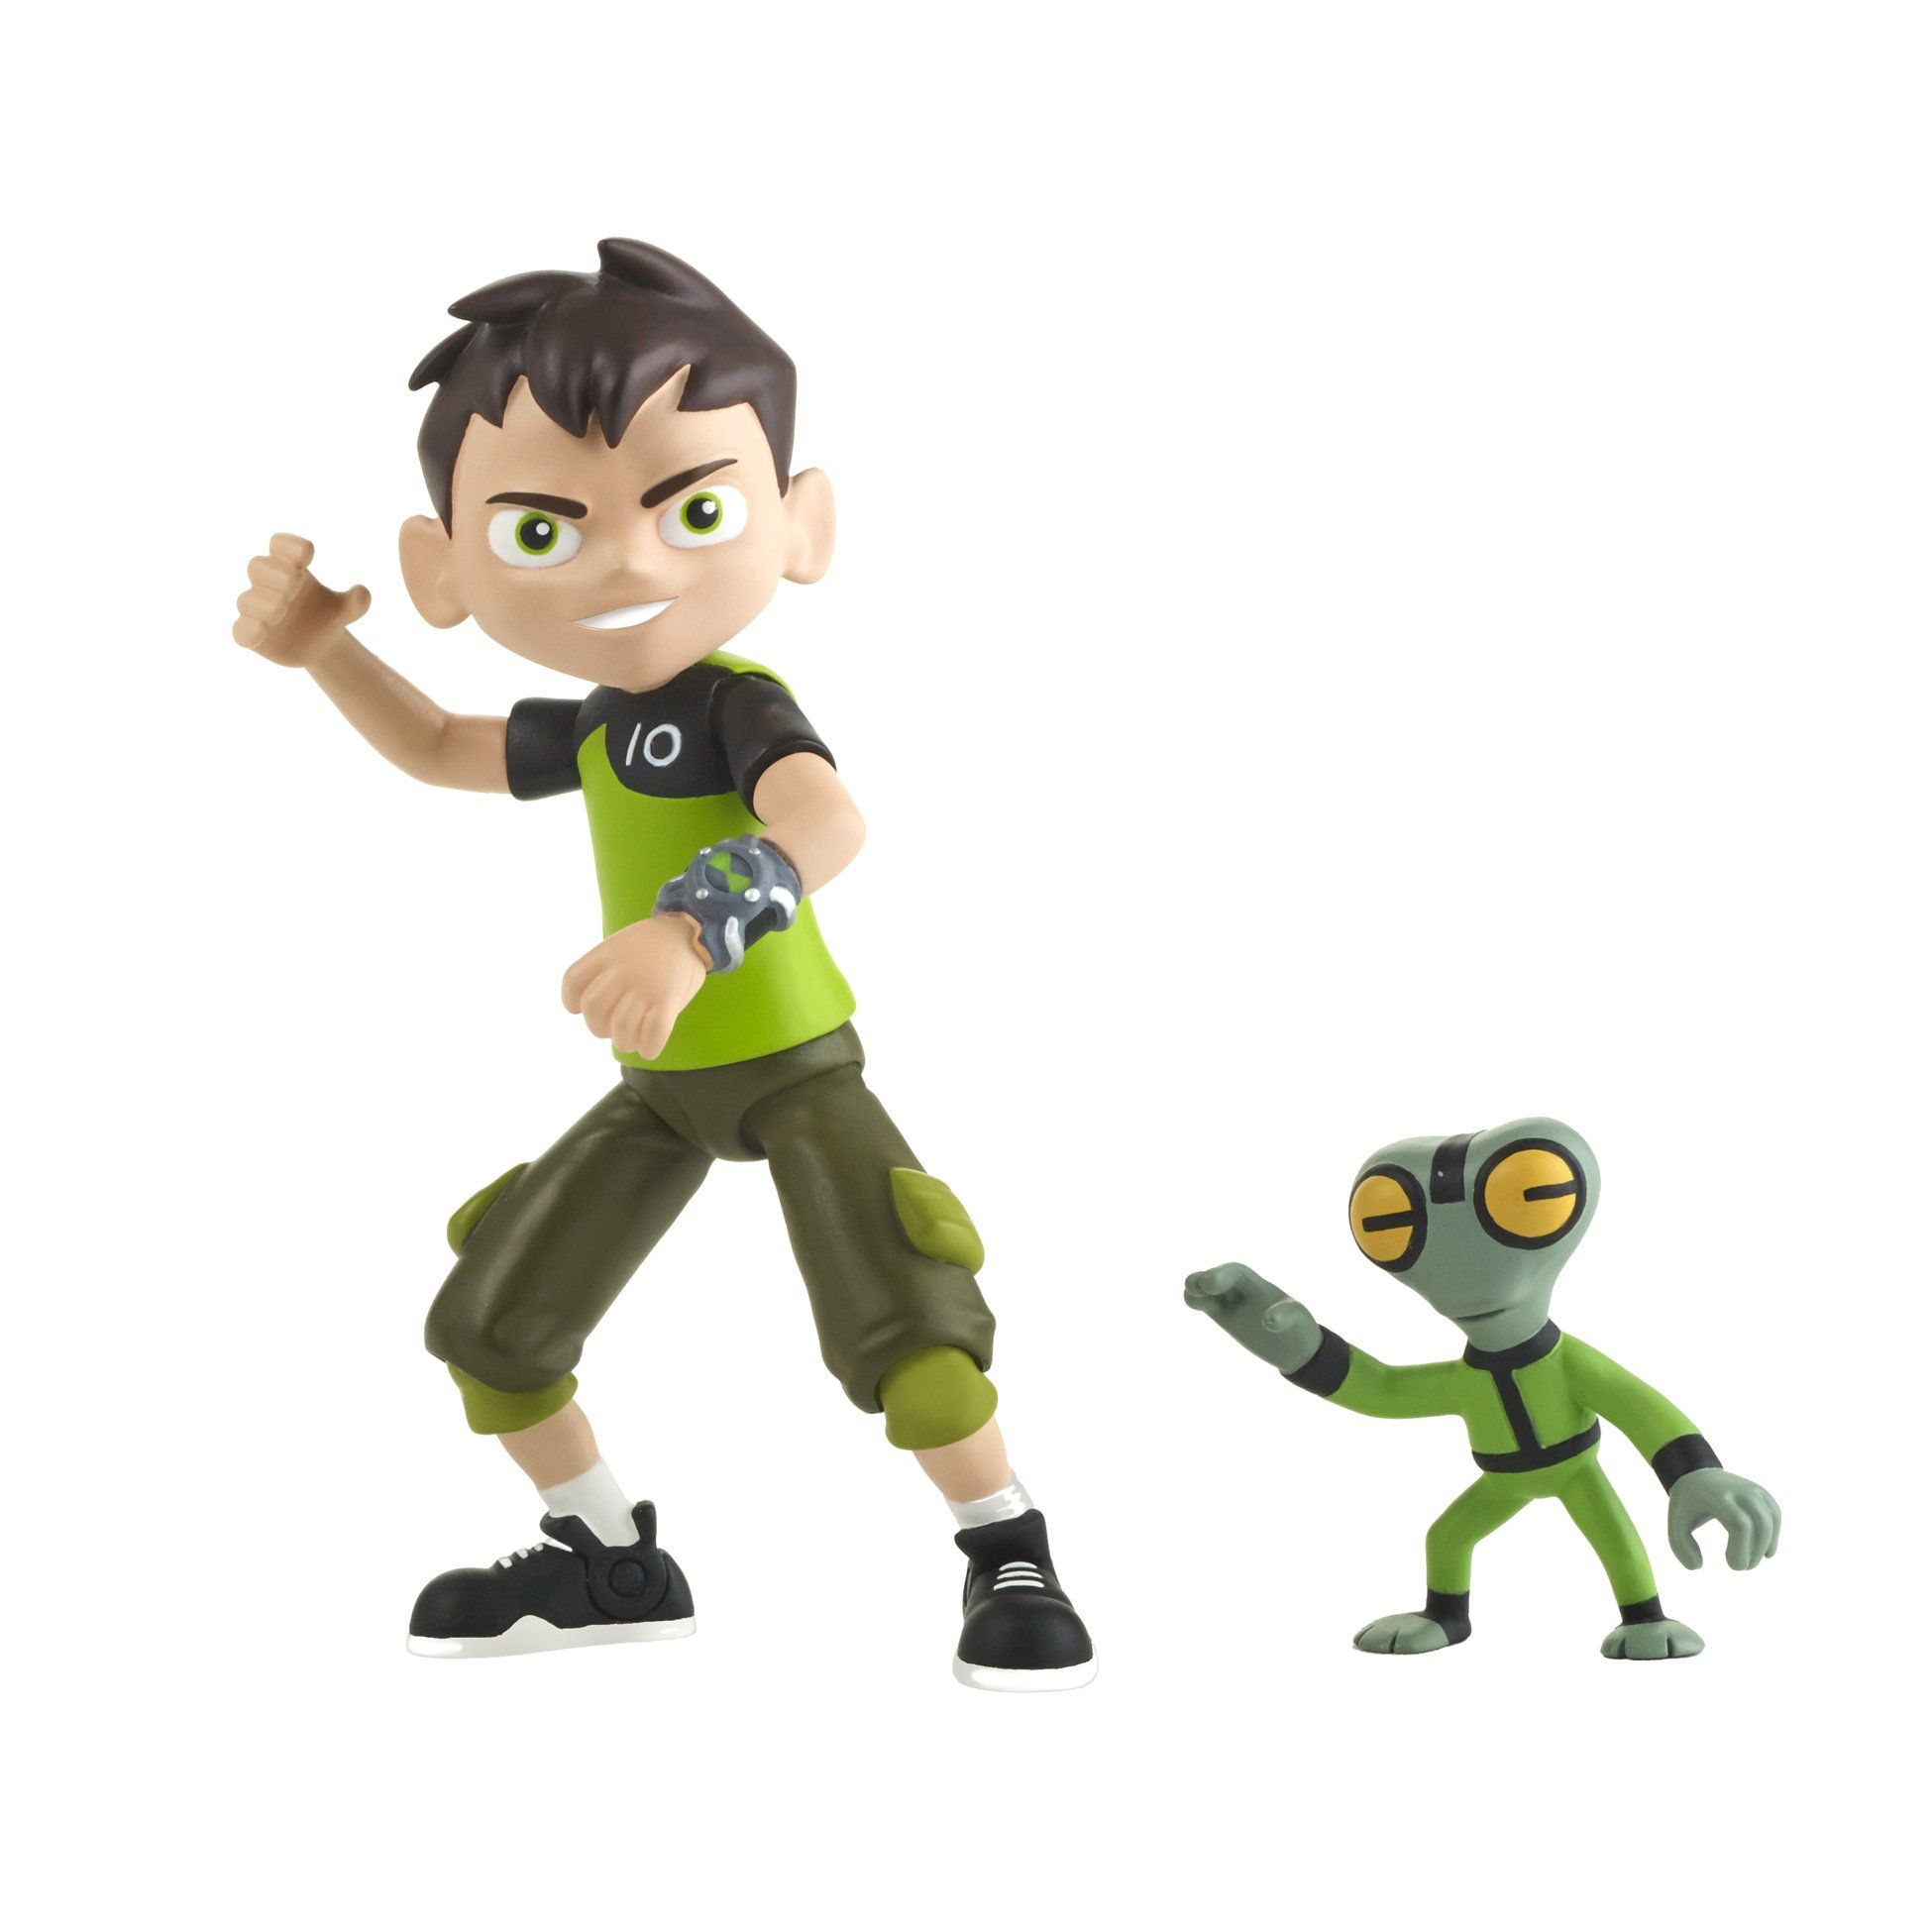 Ben 10 Ben Grey Matter Basic Figure Ben Uses The Power Of The Omnitrix To Help Others And Stop The Bad Guys Ben 10 Action Figures Action Figures Toys Ben 10